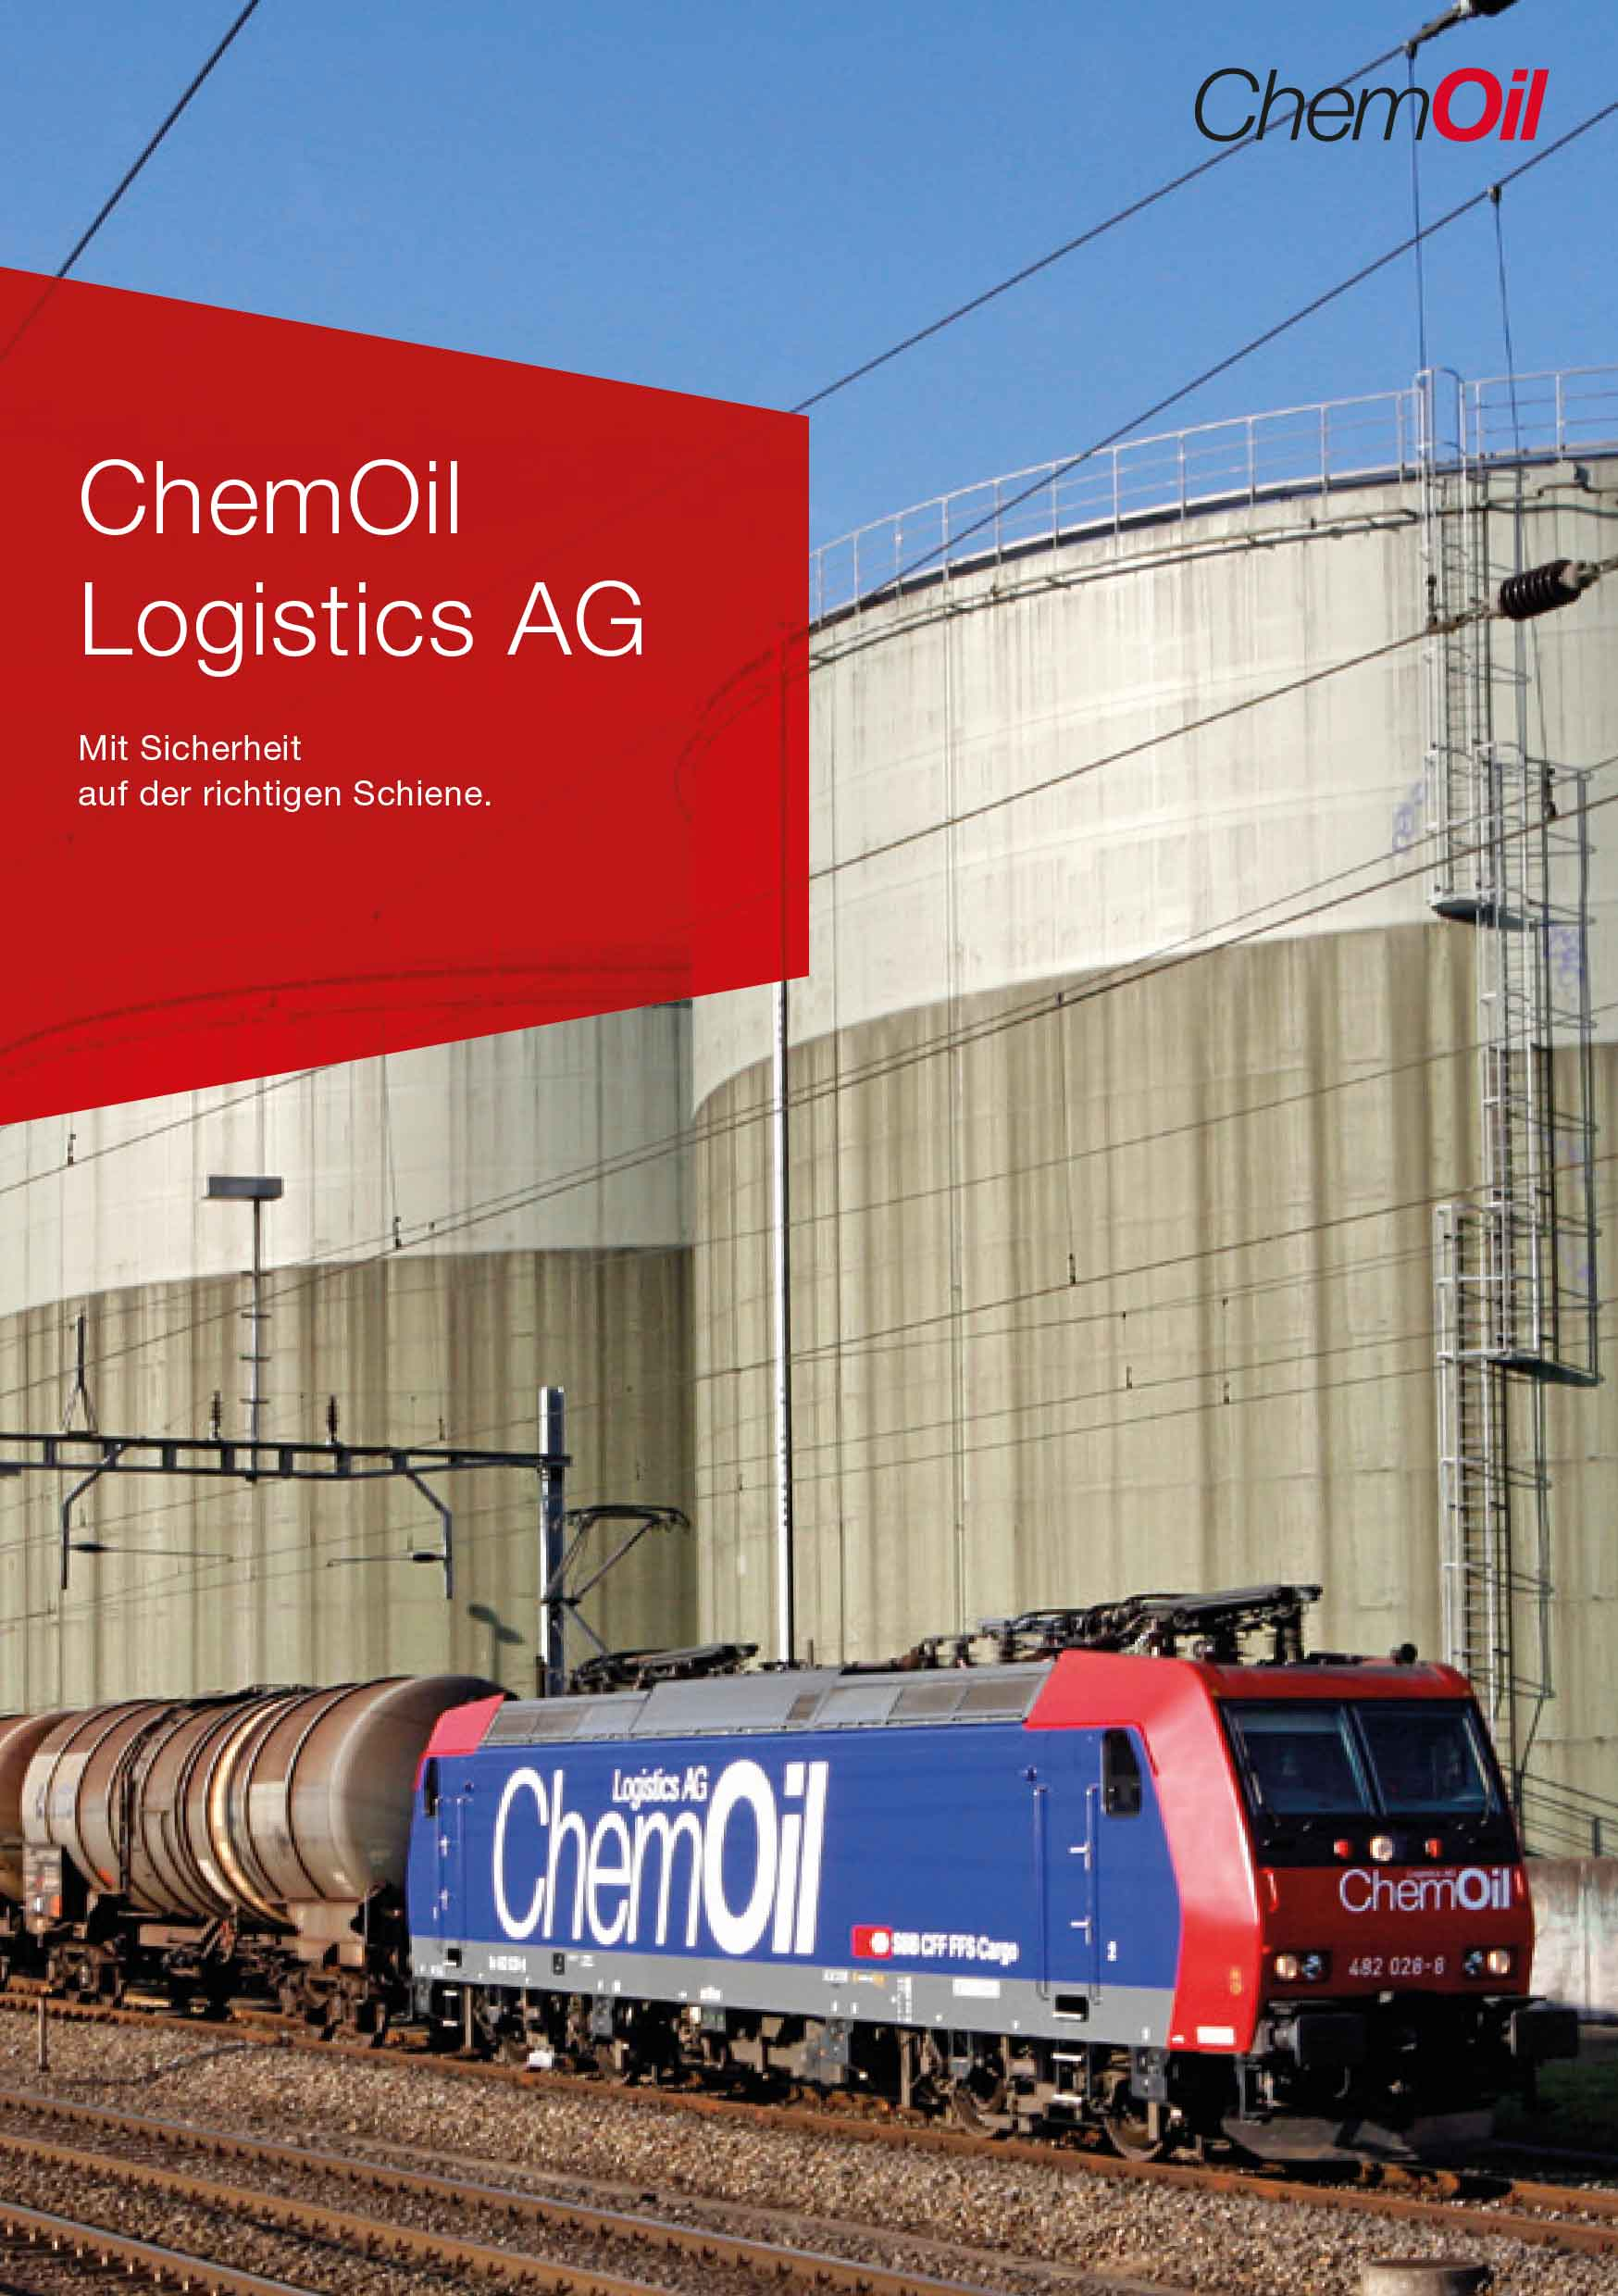 ChemOil Logistics AG – Chemoil Broschüre | Block, Trains, Fleet, ChemLink, Transport, Gütermengen, Züge, internationale Koordination, Fachwissen